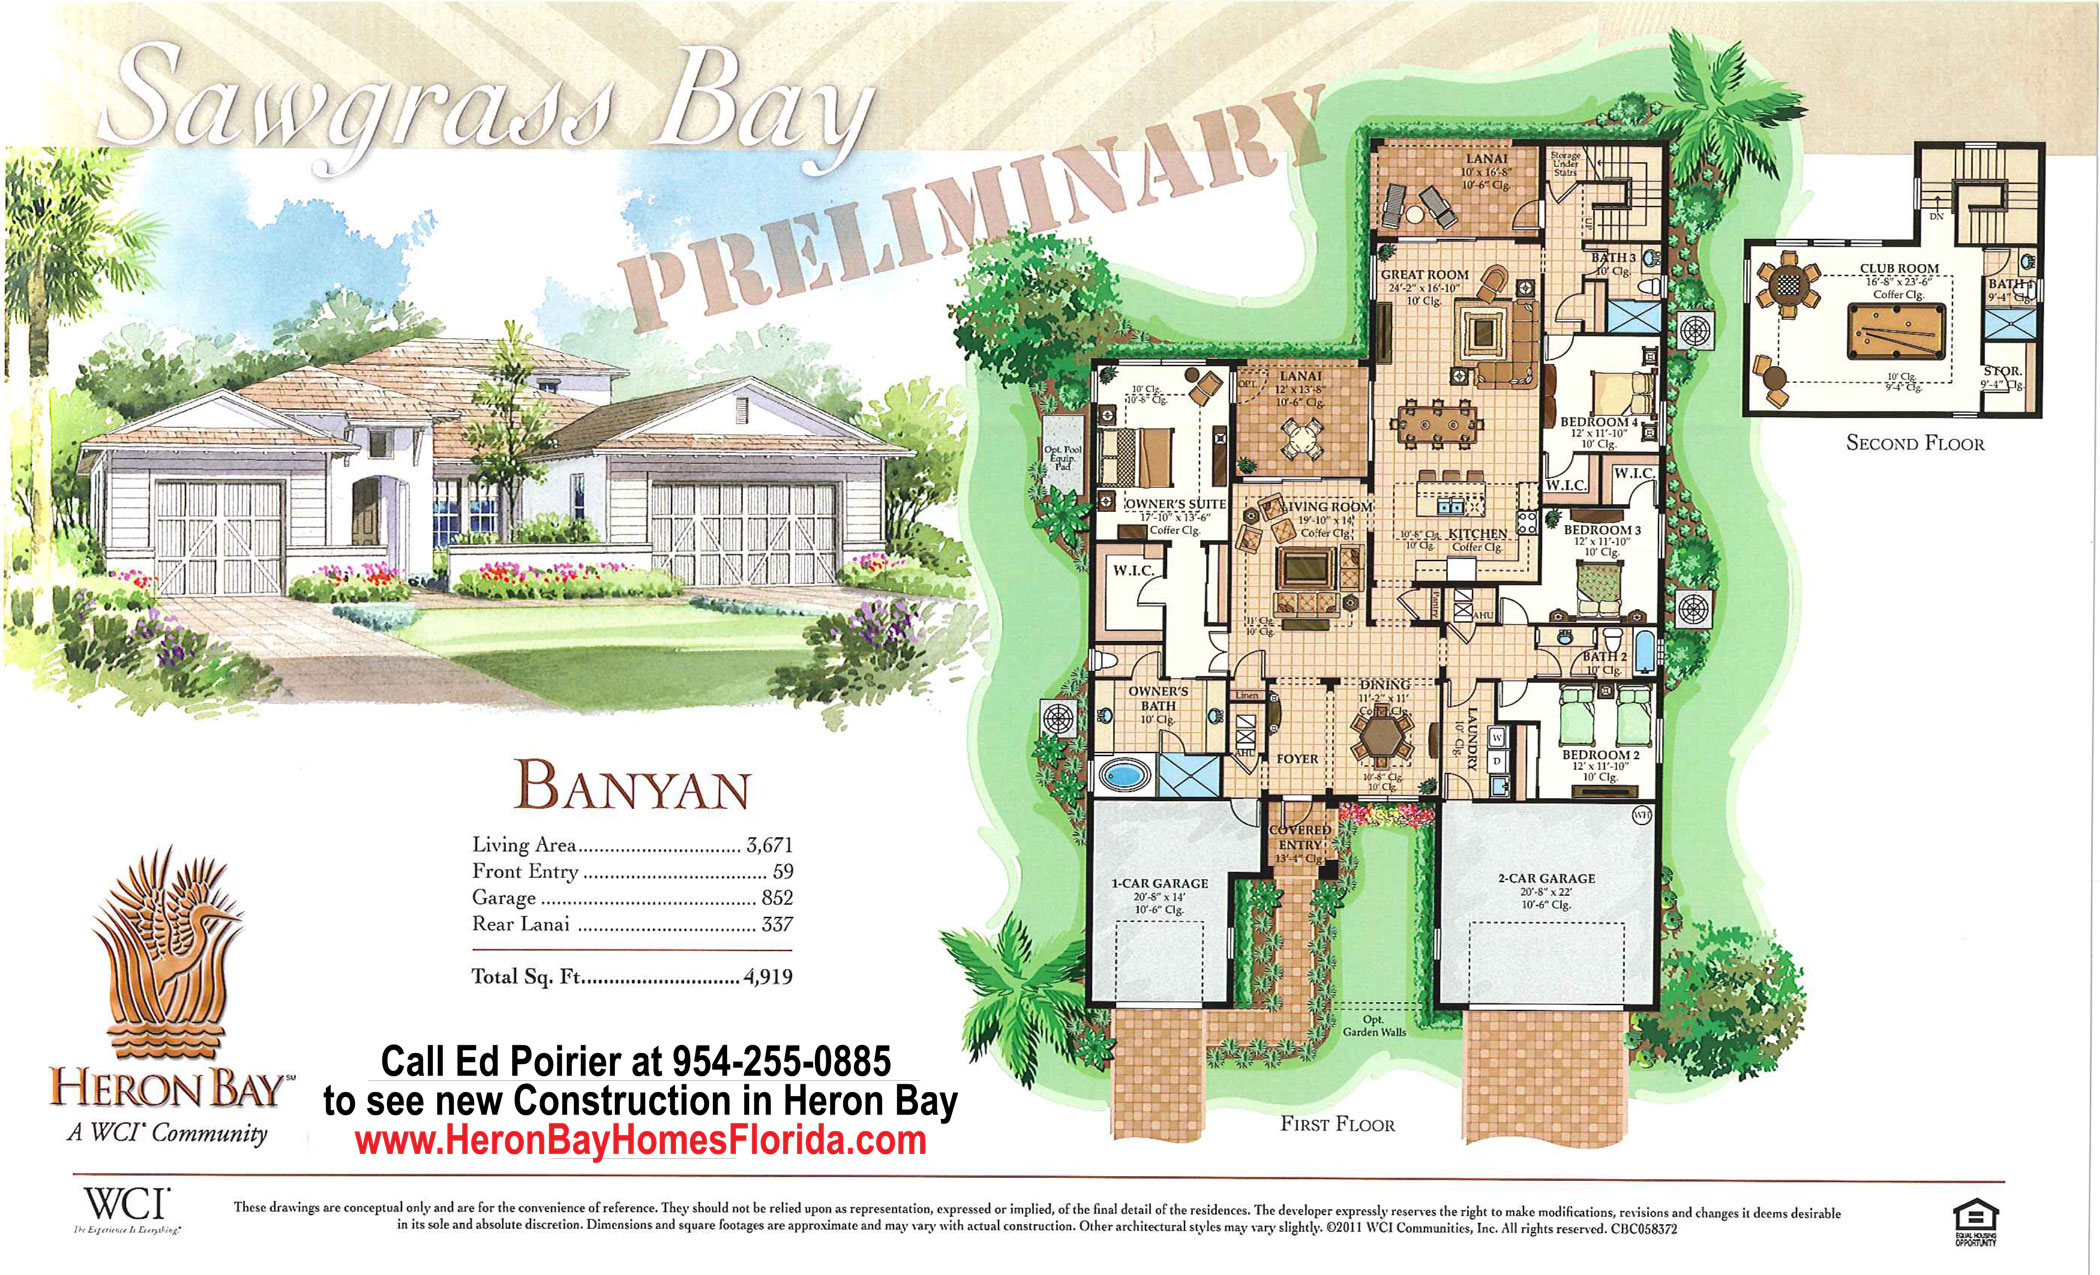 Heron bay new construction banyan model floor plan and prices for Parkland plan